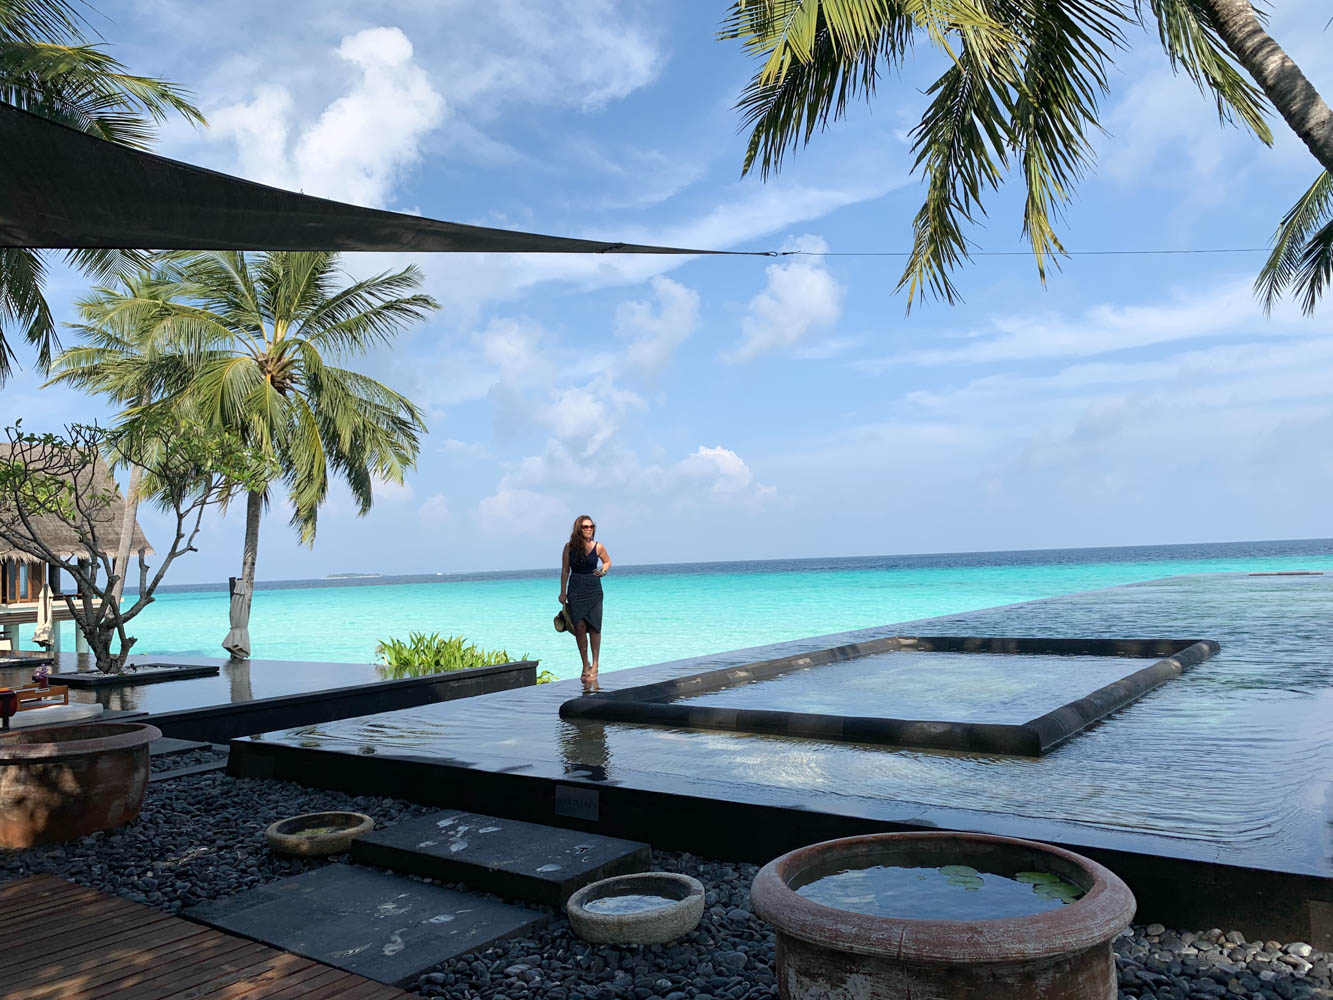 Maldives_Resort_Honeymoon_OneandOnly_MaldivesTravelAdvisor-23.jpg